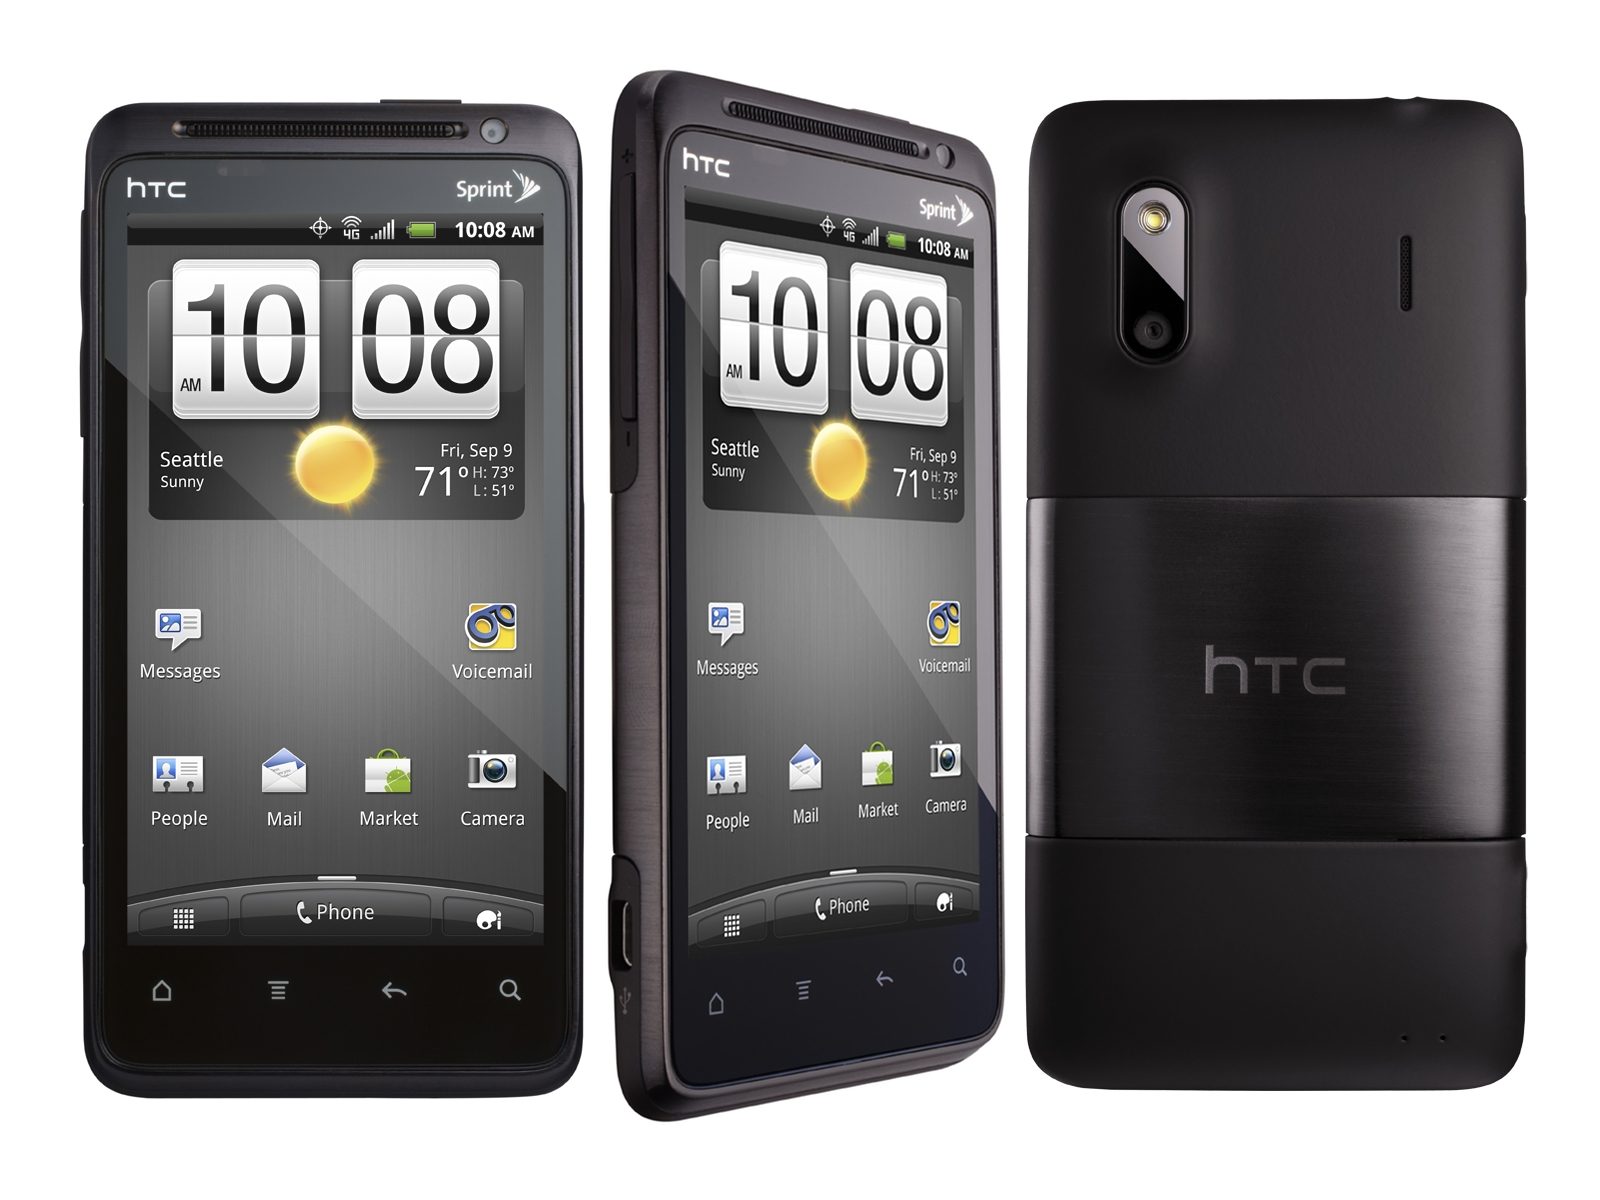 htc boost mobile phones. htc evo design 4g wimax android smart phone boost mobile htc phones f